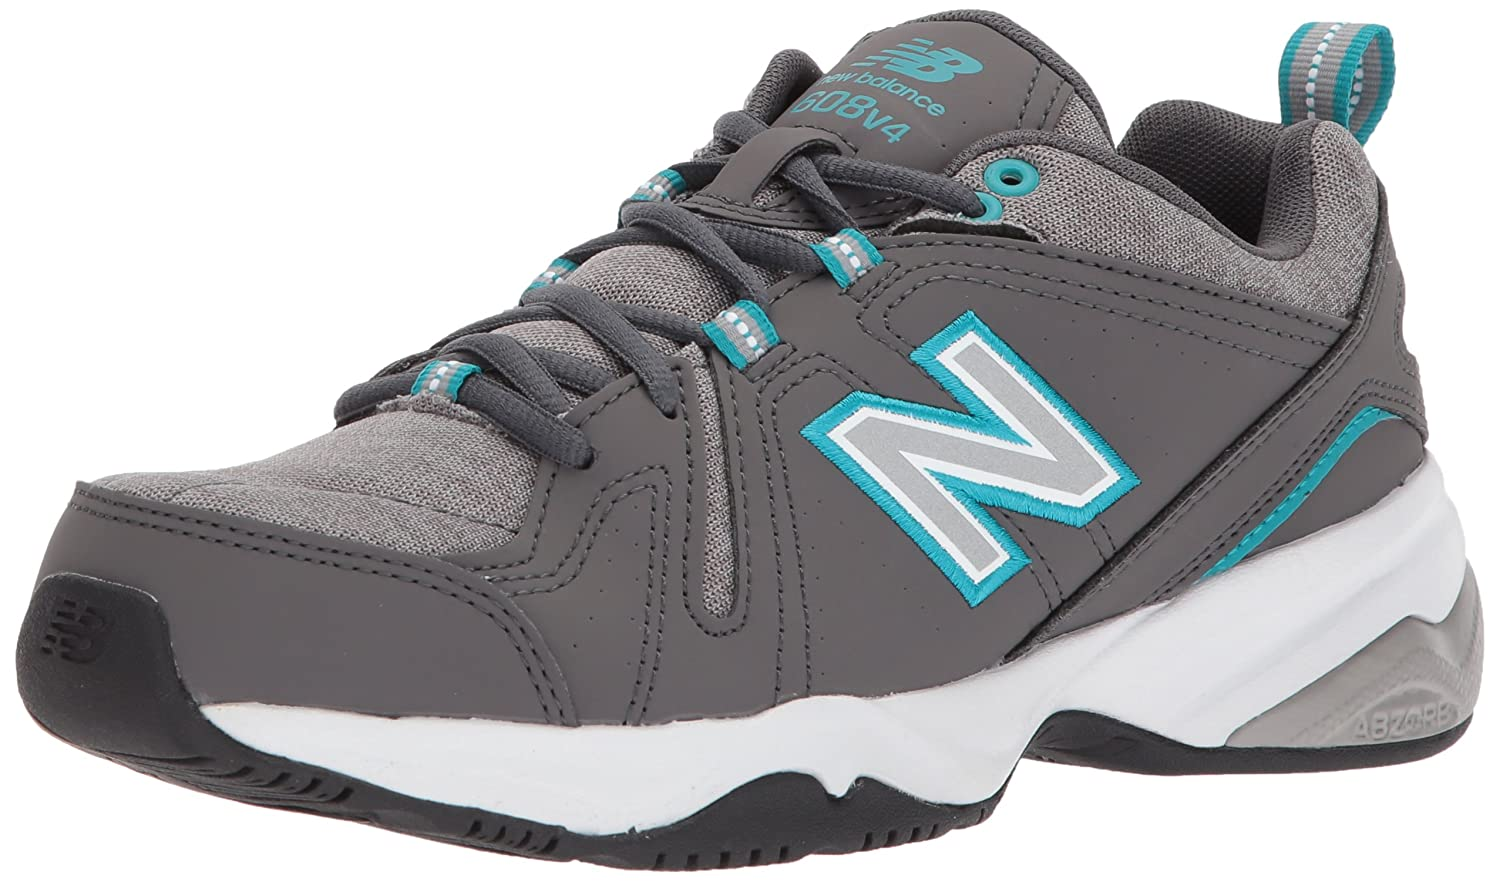 New Balance Women's WX608v4 Training Shoe B01NBODDUS 5.5 B(M) US|Grey